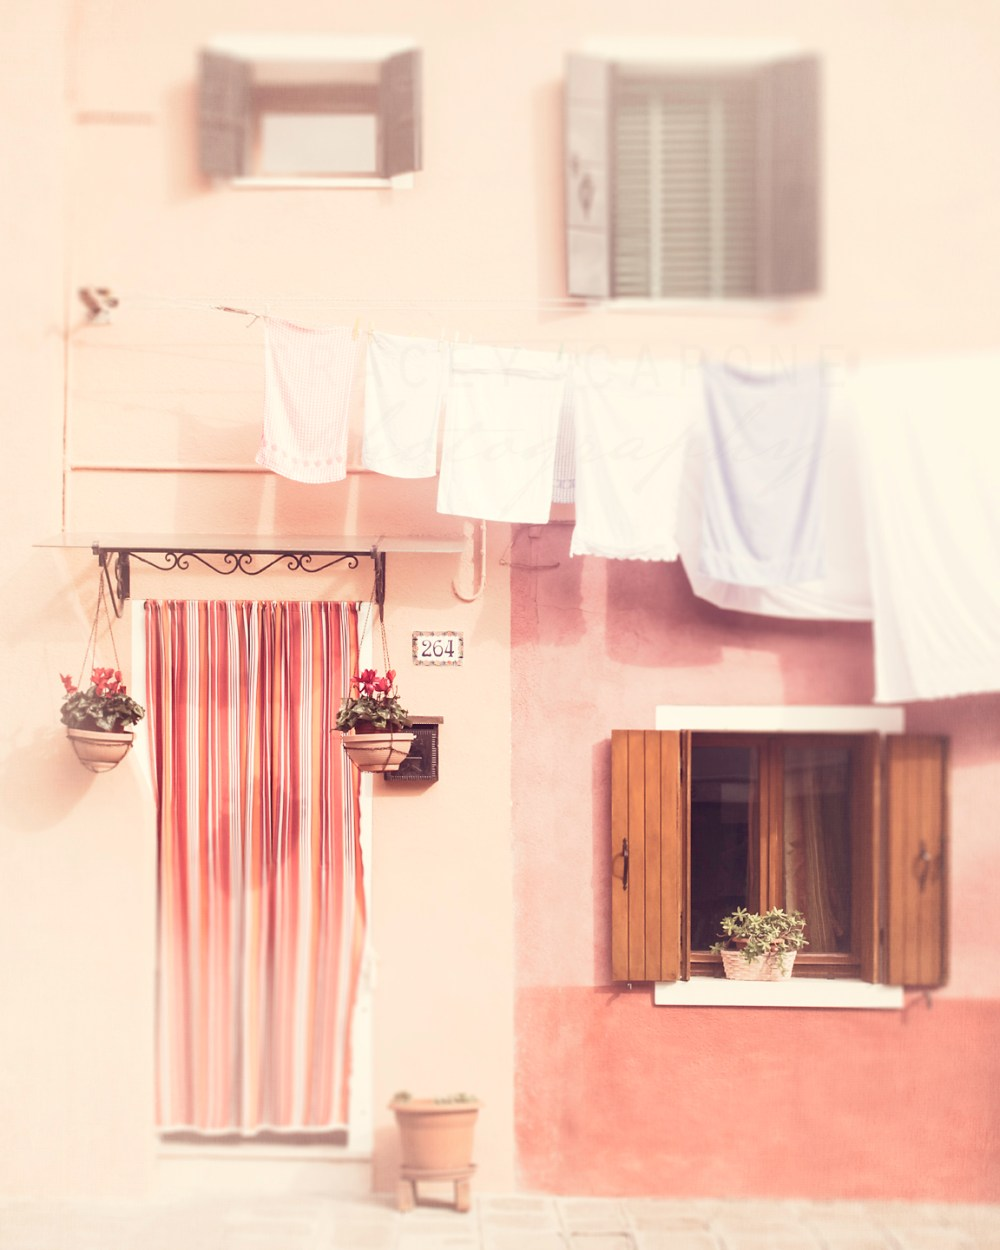 A light pink home with laundry hanging on the island of Burano, Italy. Landscape and travel photography by Tracey Capone.